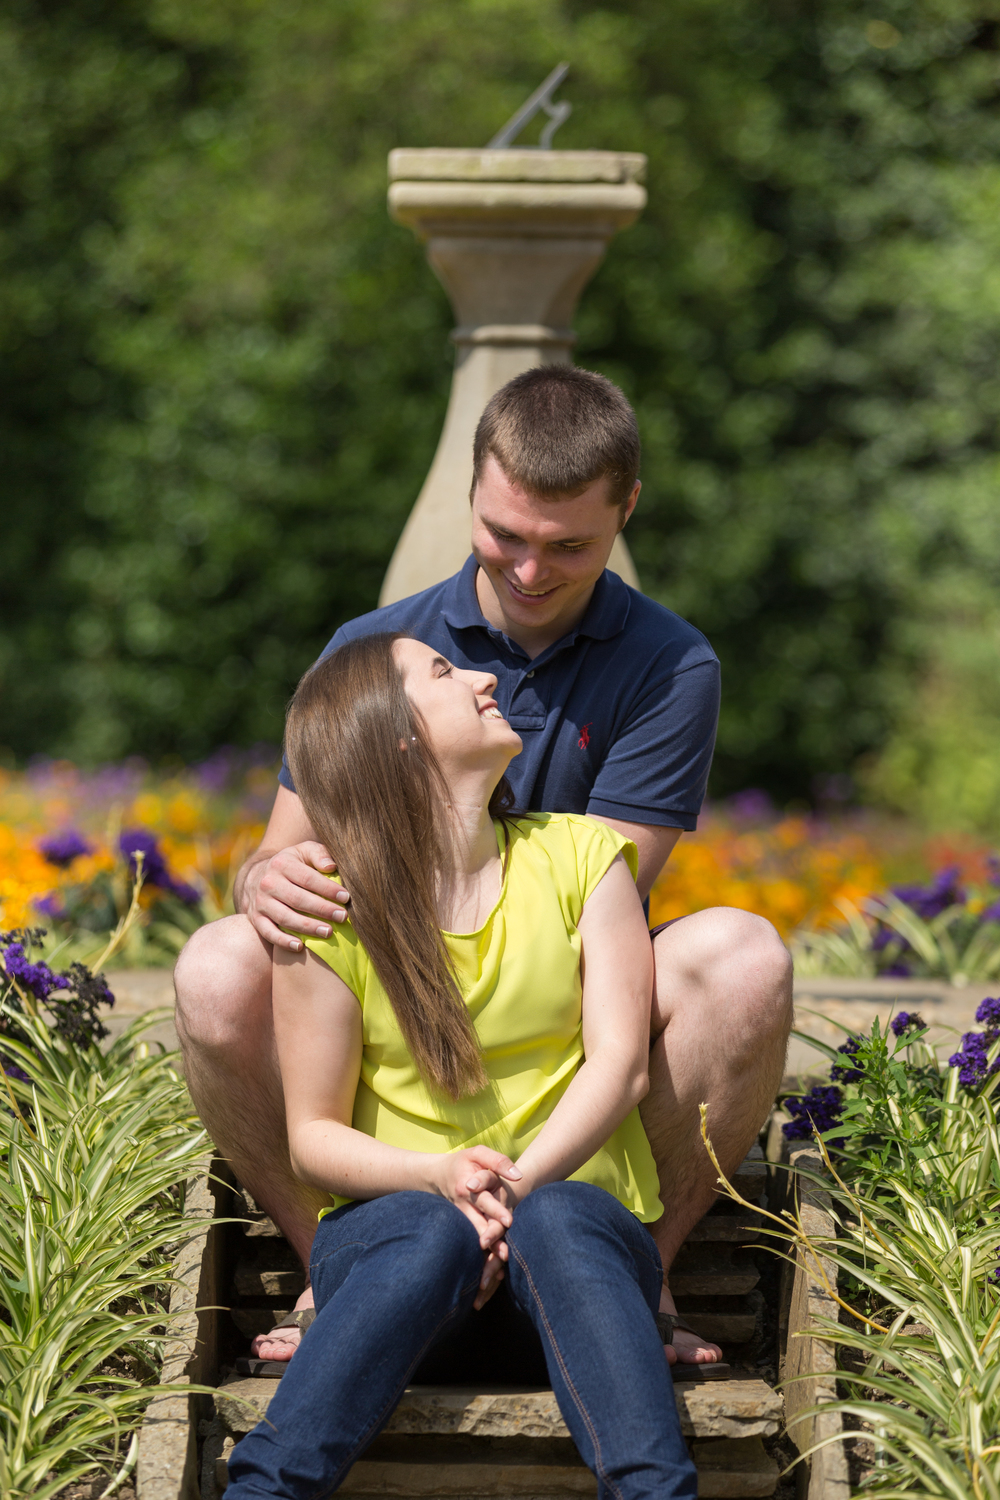 Image from Rachel & Ed's Engagement Photoshoot at Hylands Park, Chelmsford